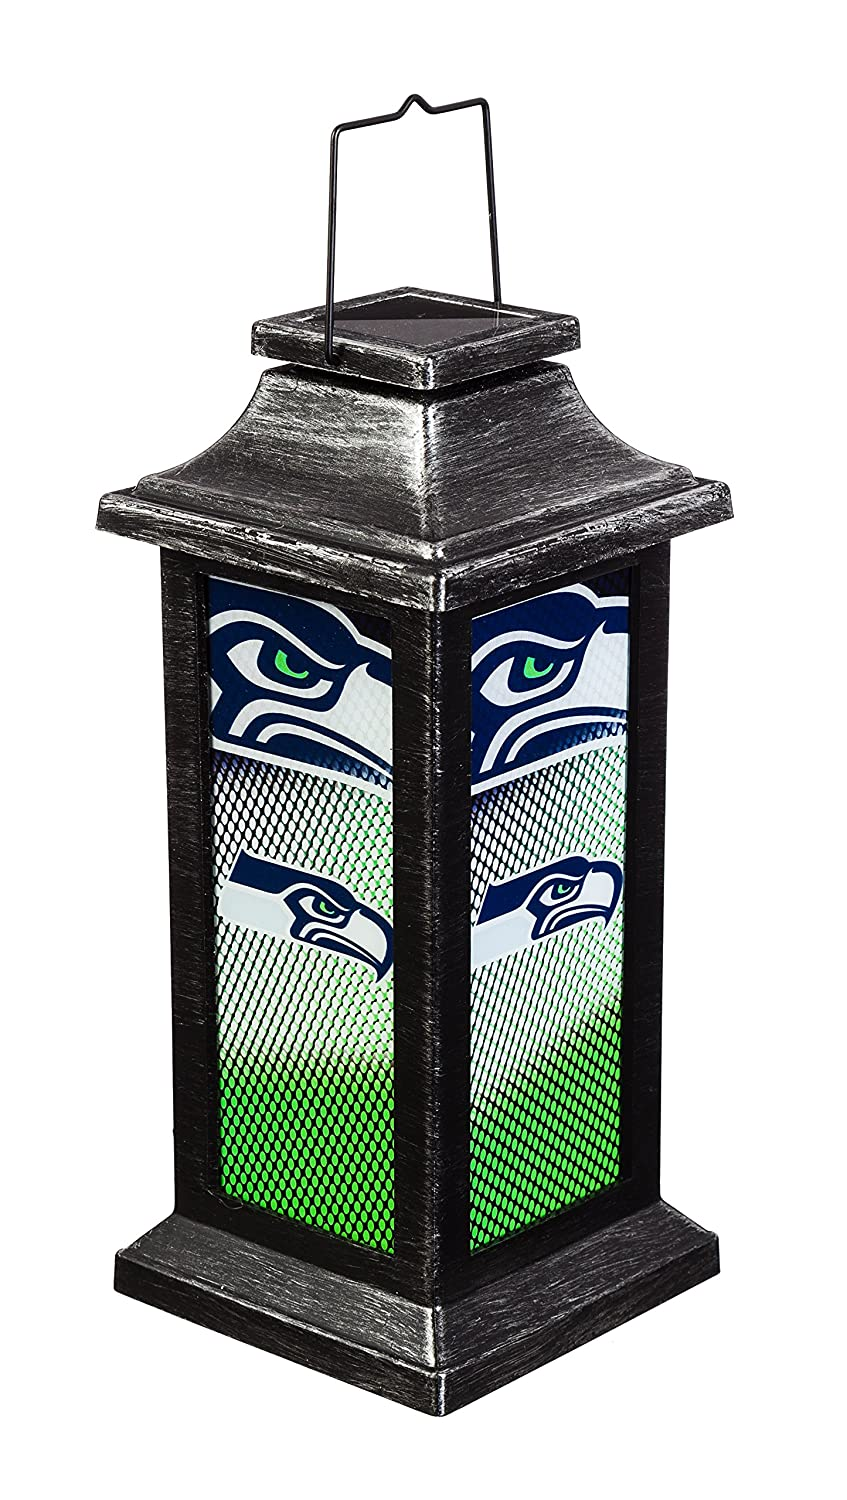 Team Sports America NFL Solar Powered Outdoor Safe Hanging Garden Lantern